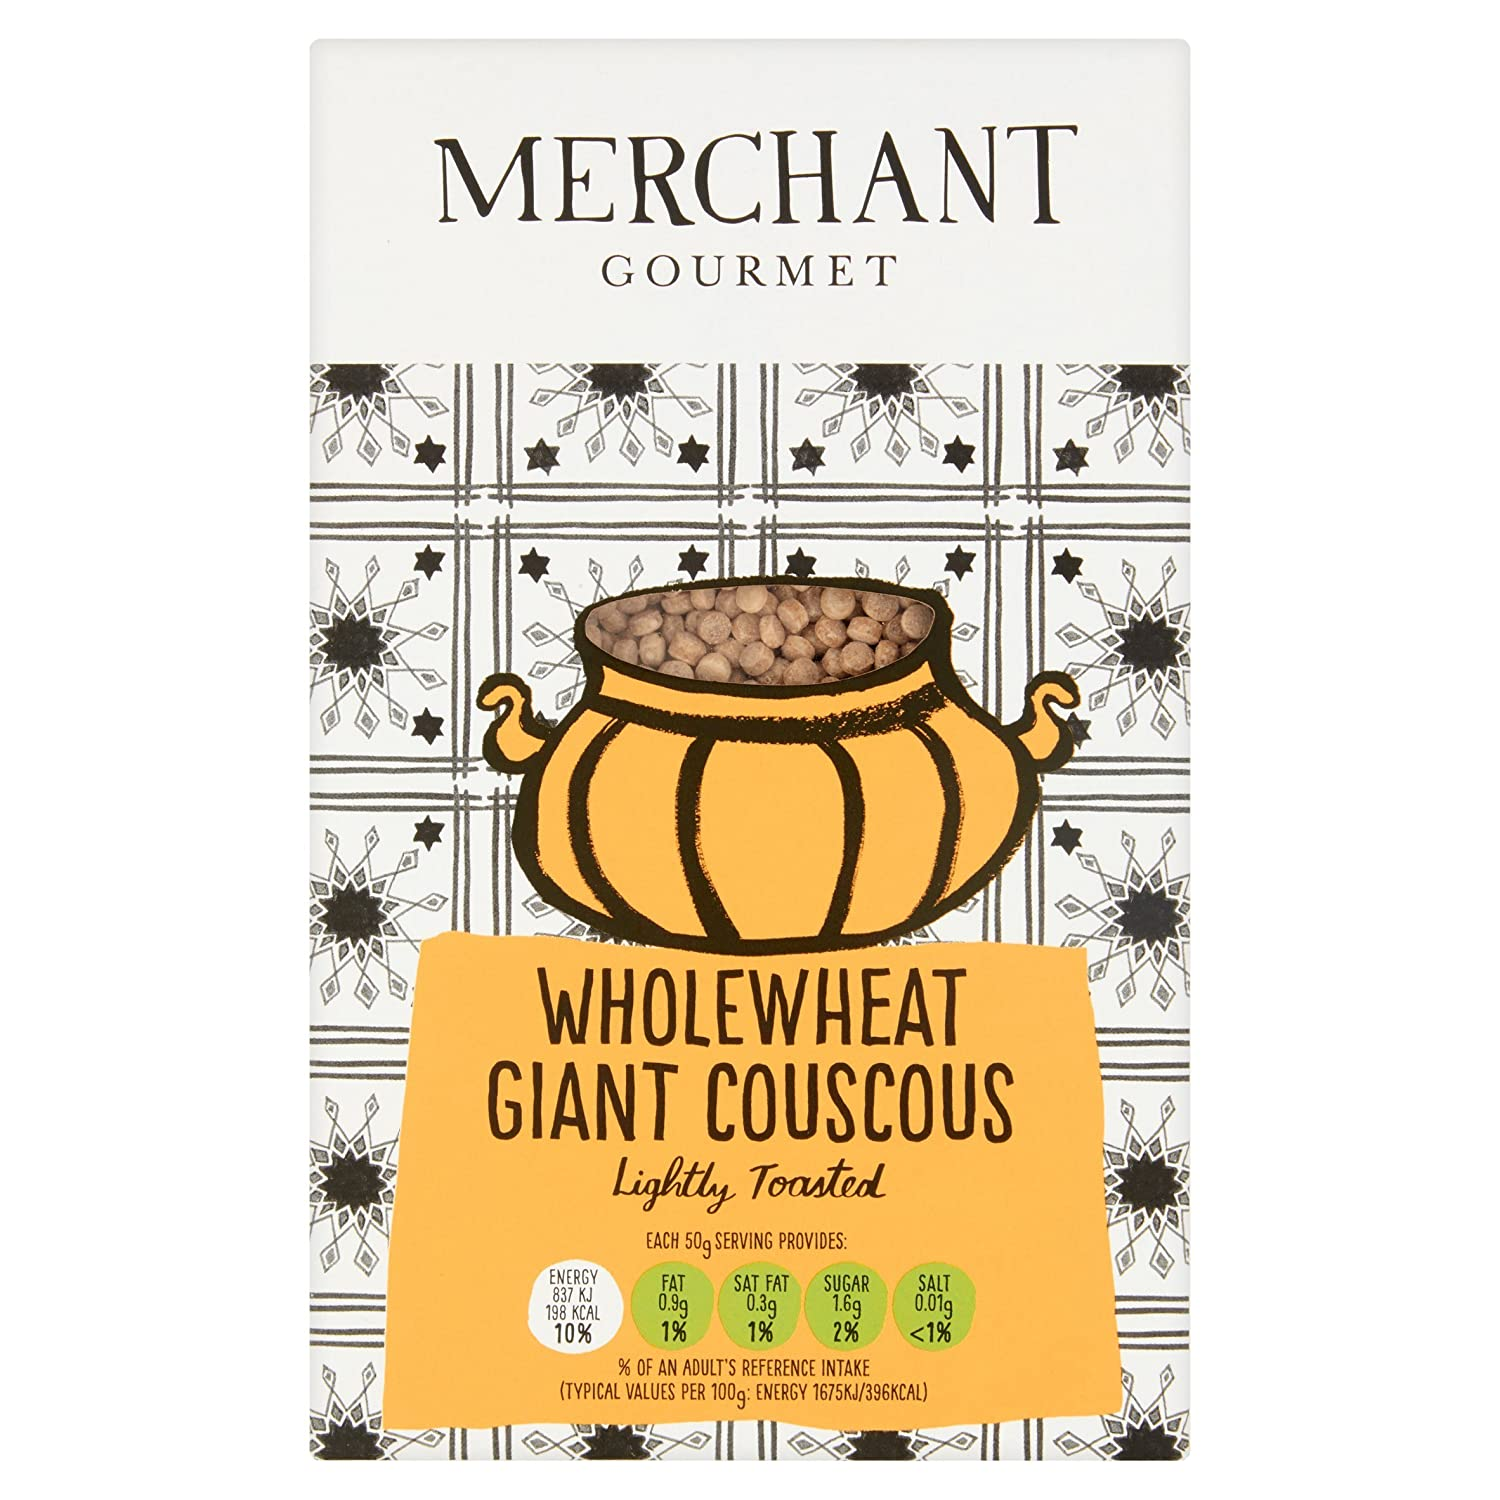 Merchant Gourmet Quality inspection Wholewheat Giant Cous Excellence